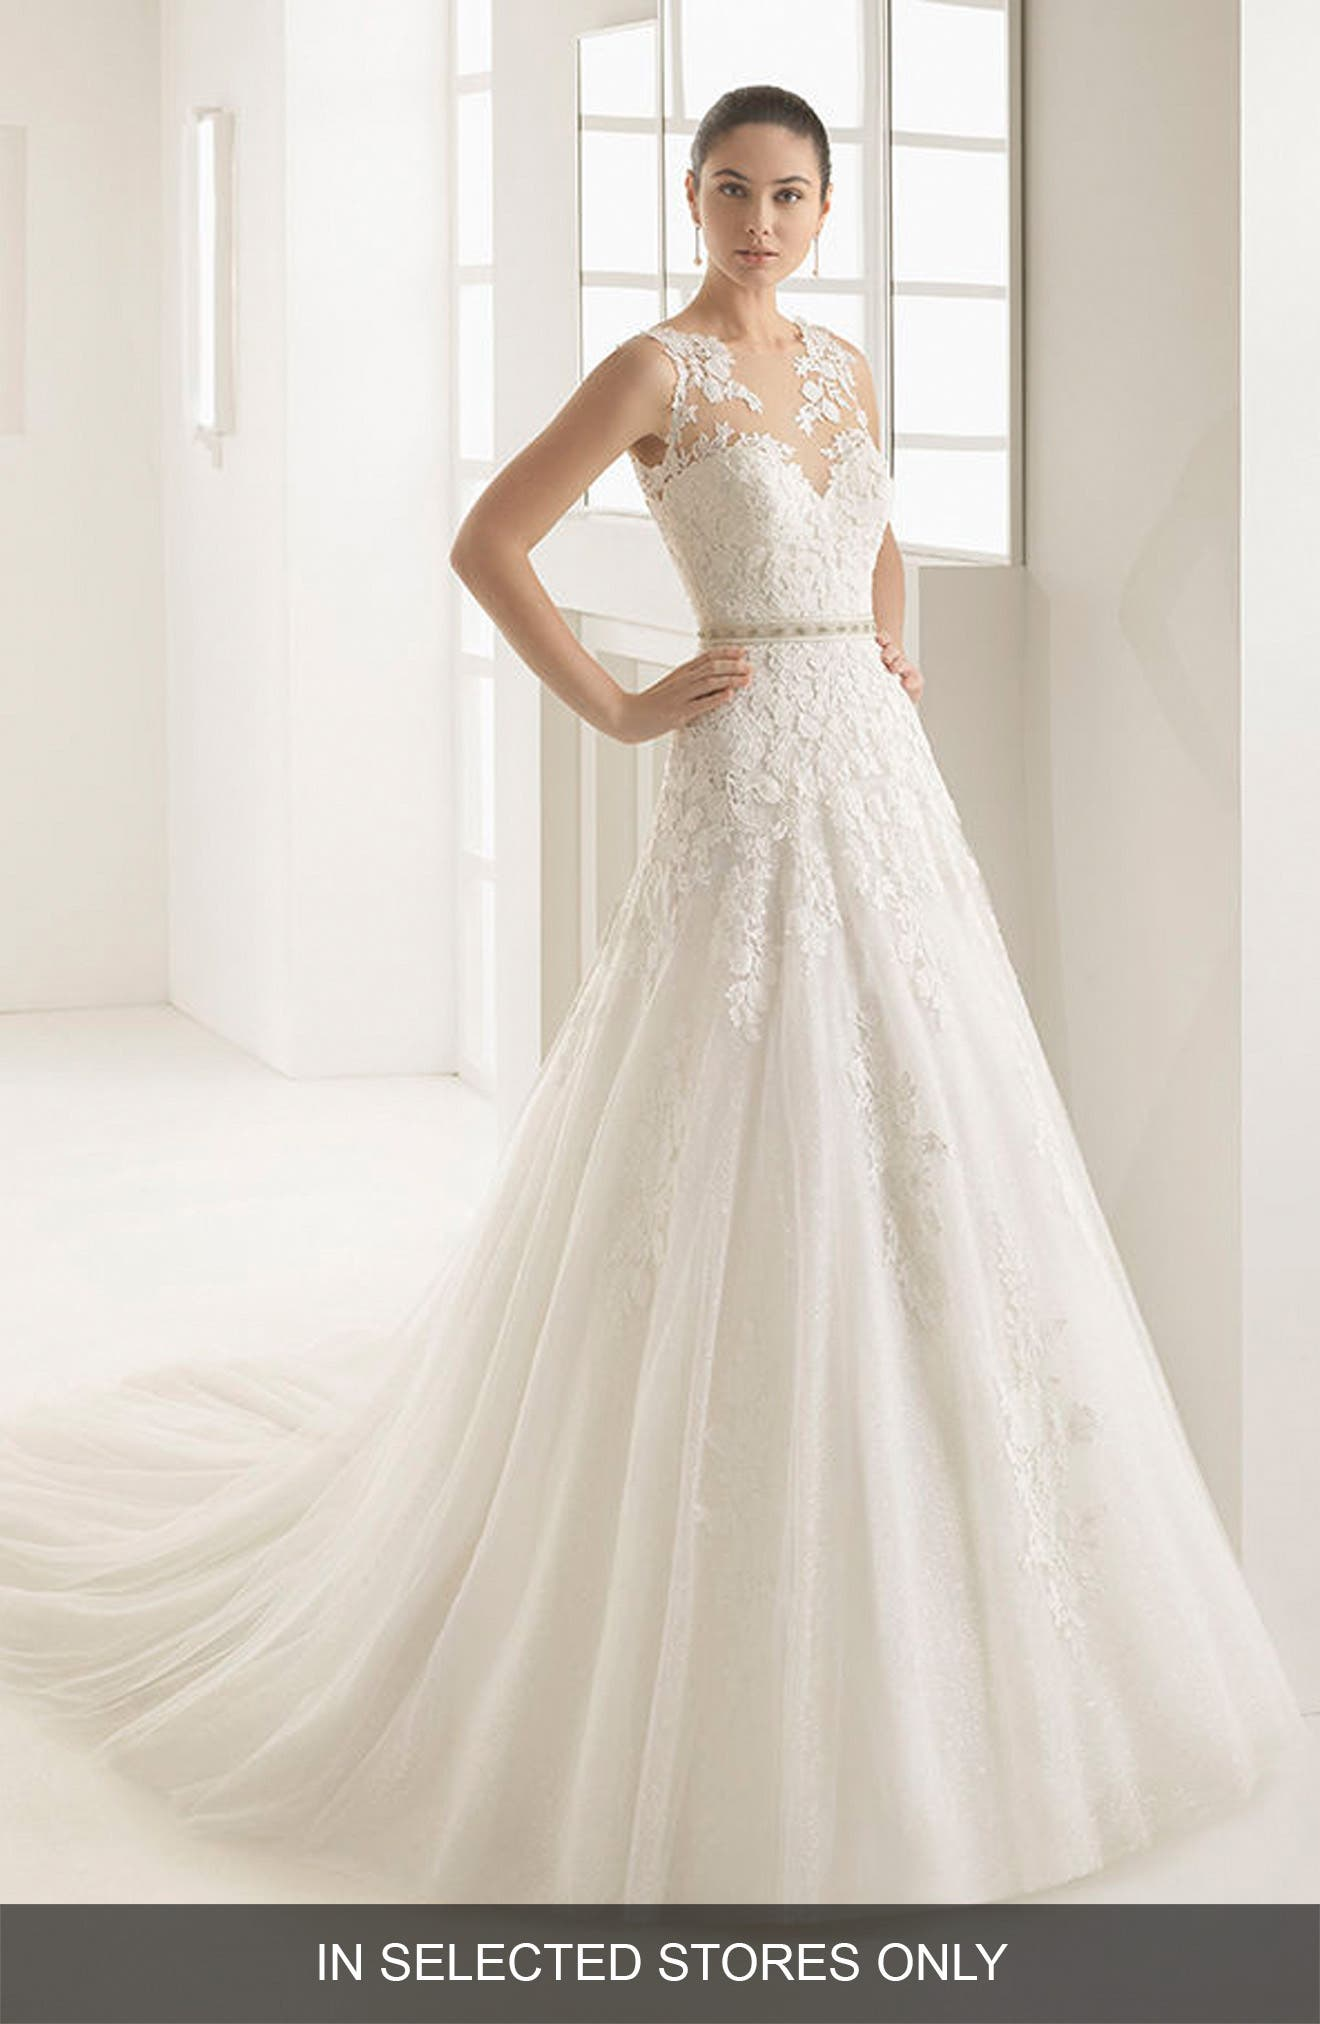 Oda Sleeveless Lace & Tulle Gown,                         Main,                         color, Natural